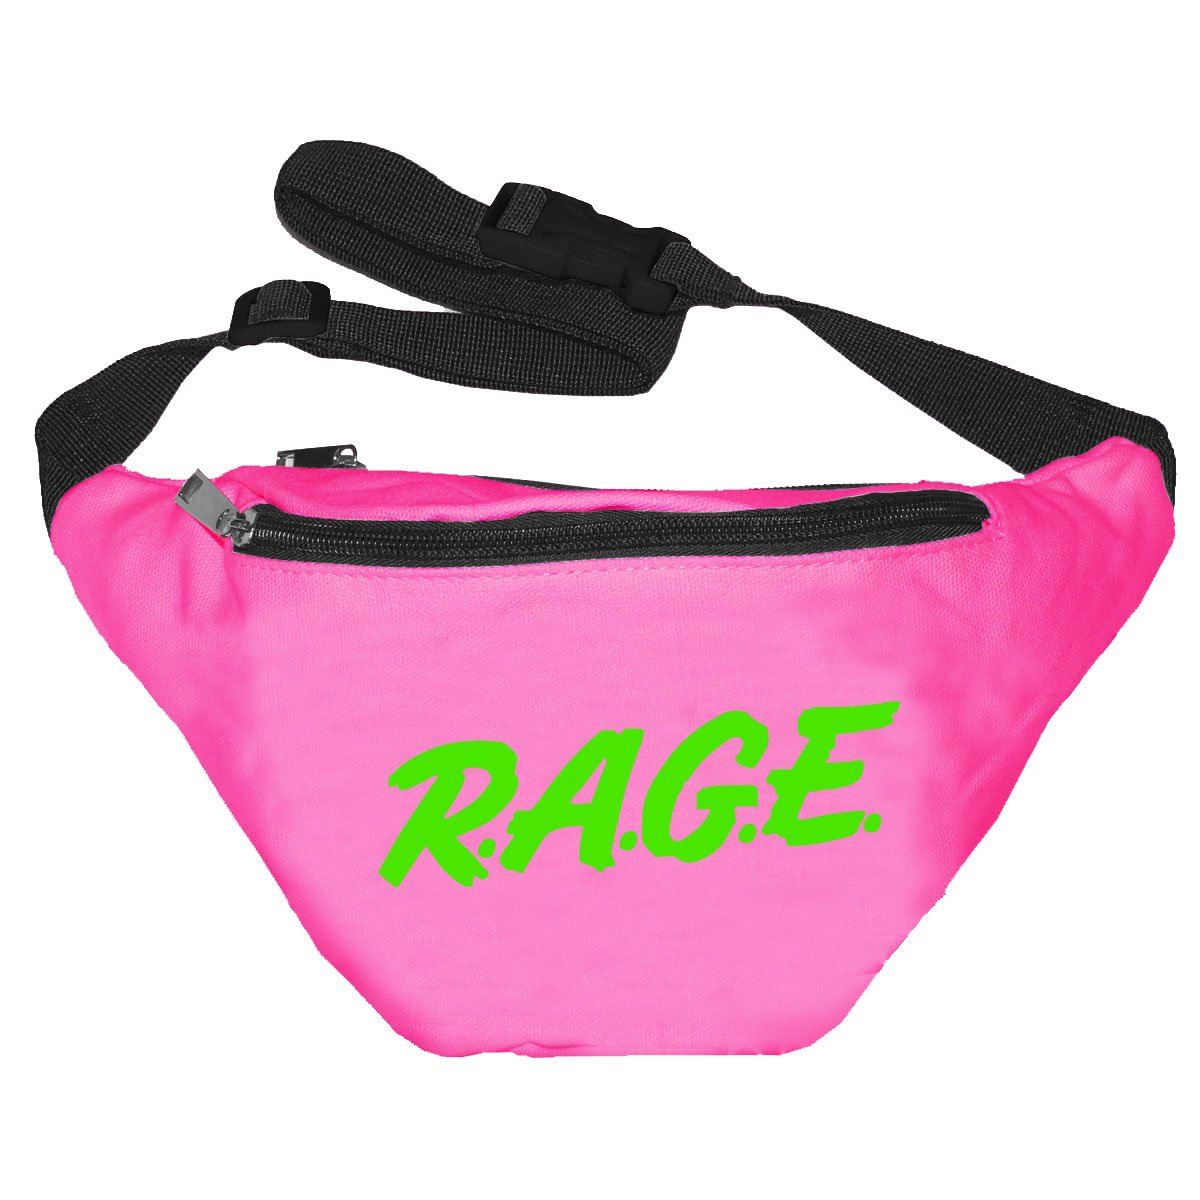 Funny Guy Mugs Rage Pink Fanny Pack